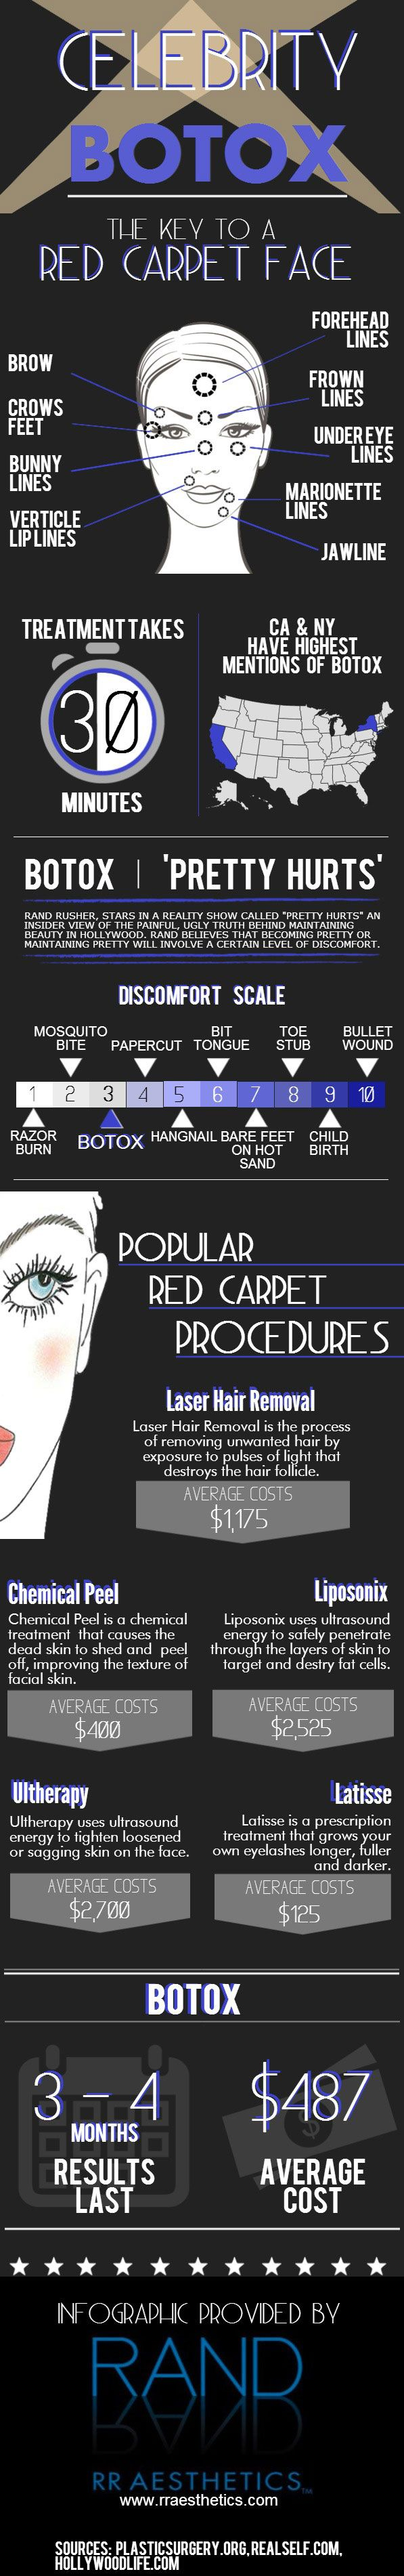 Celebrity Botox - The Key to A Red Carpet Face   #infographic #Beauty #Celebrity #Health